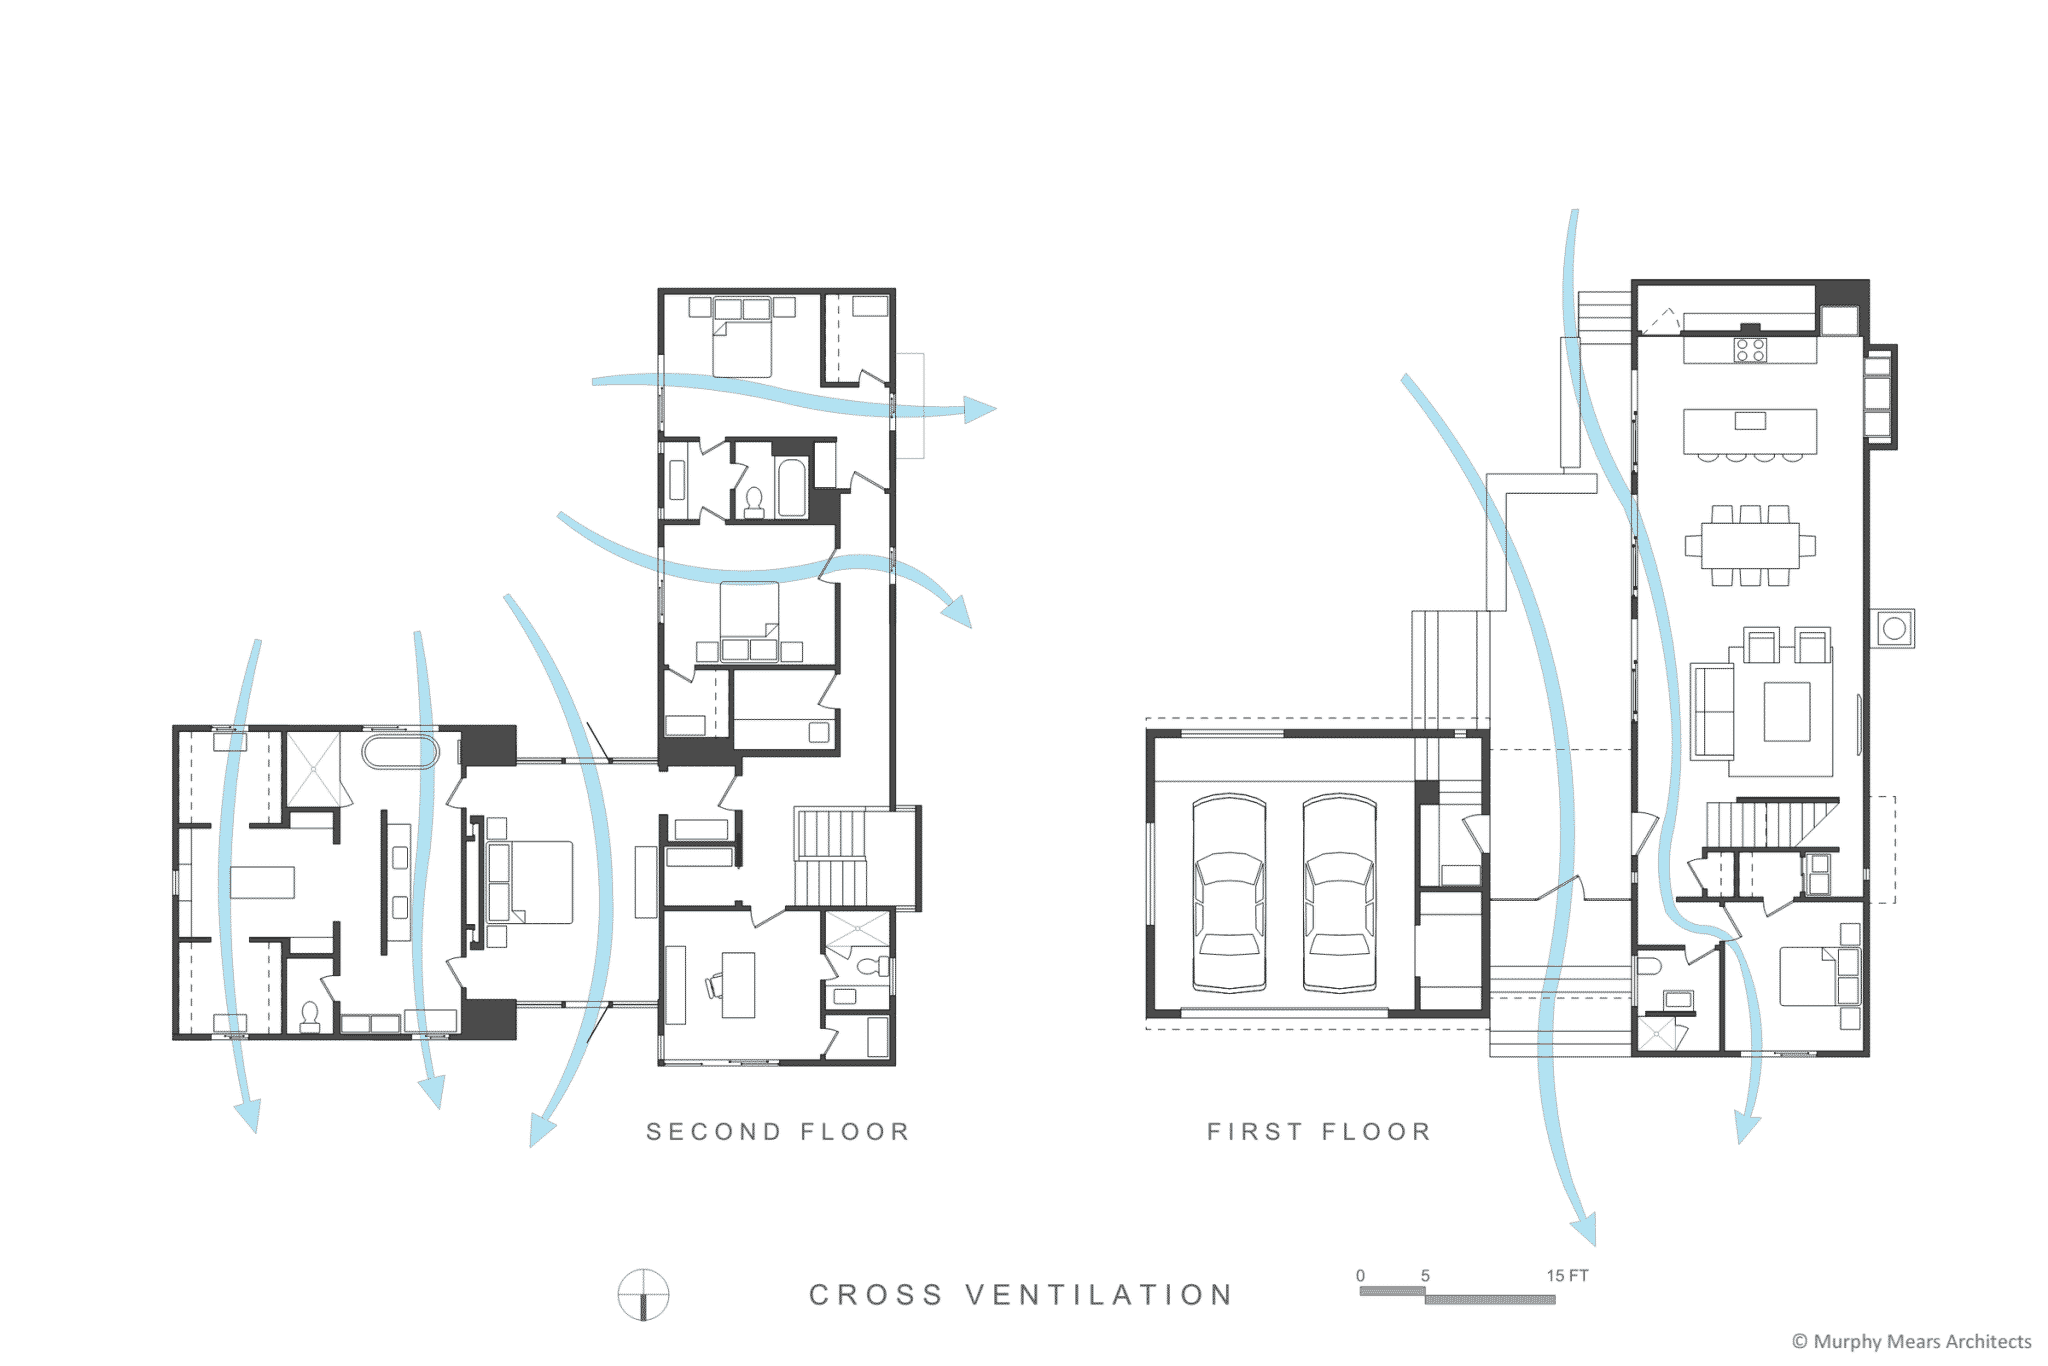 Cross ventilation through first and second floor areas.